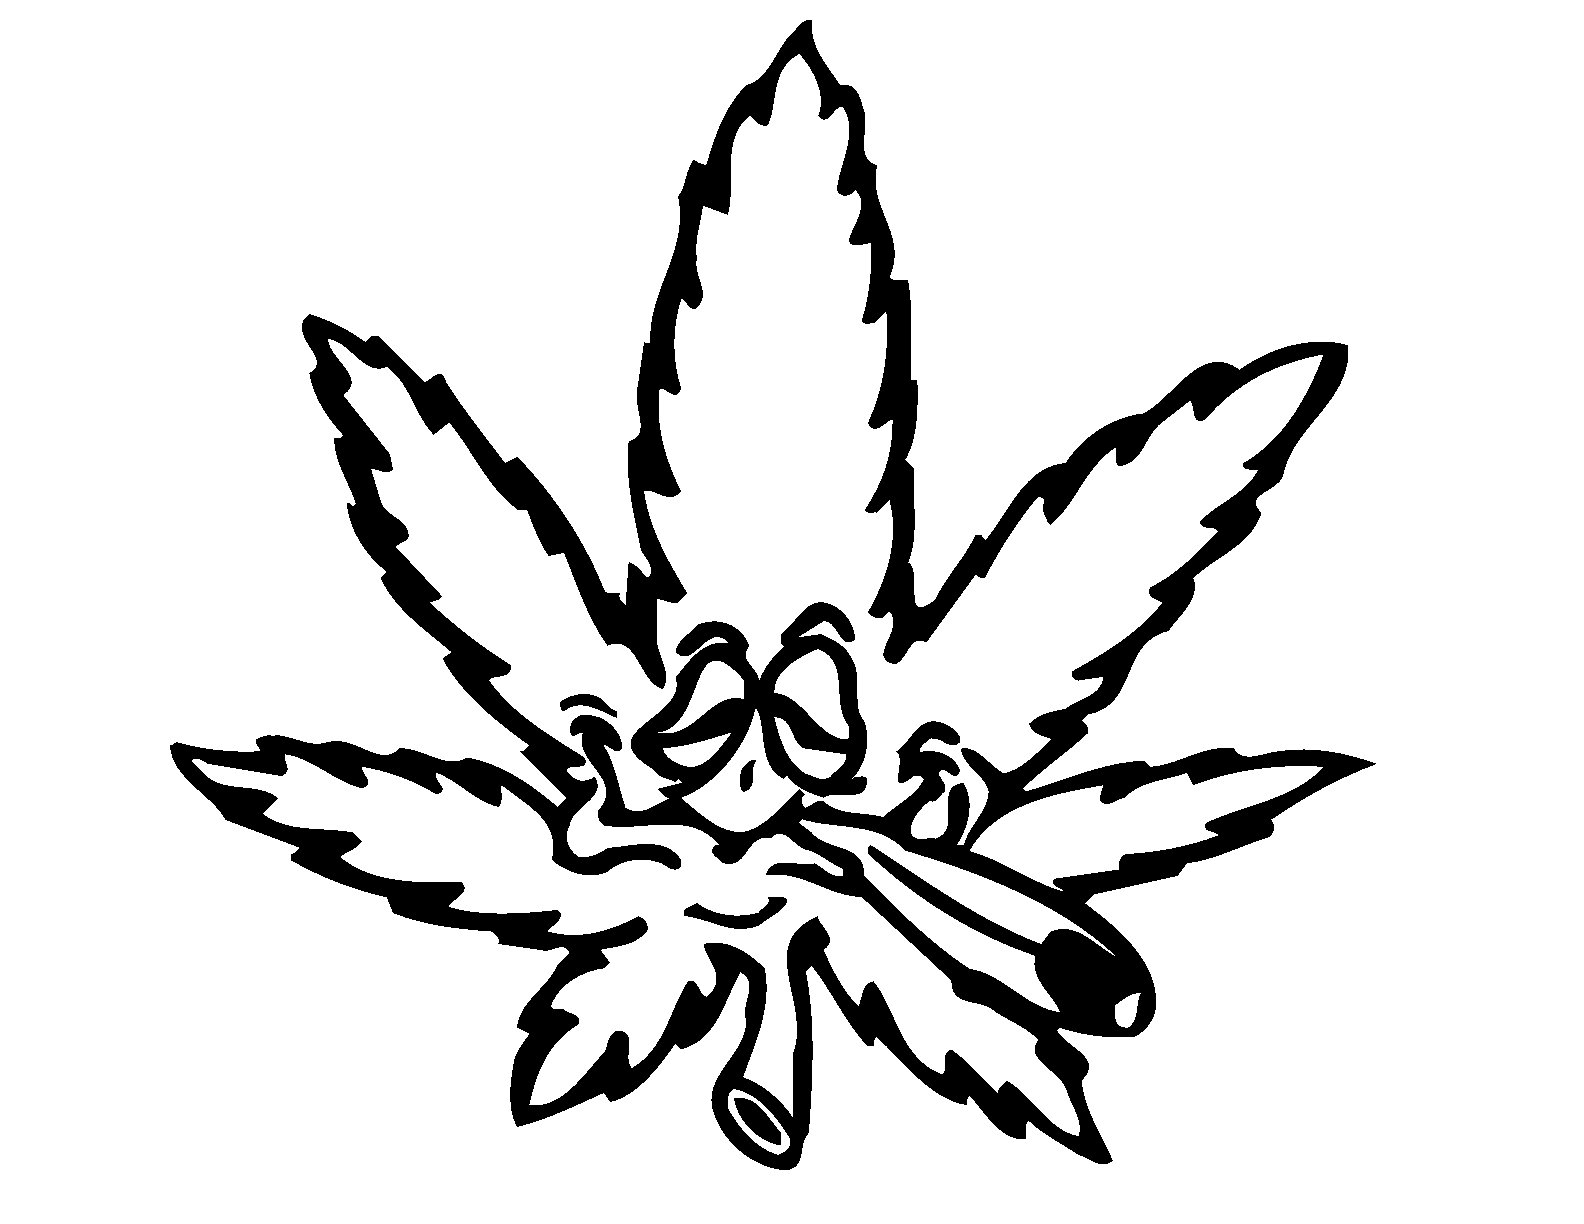 Drawings Of Weed - ClipArt Best